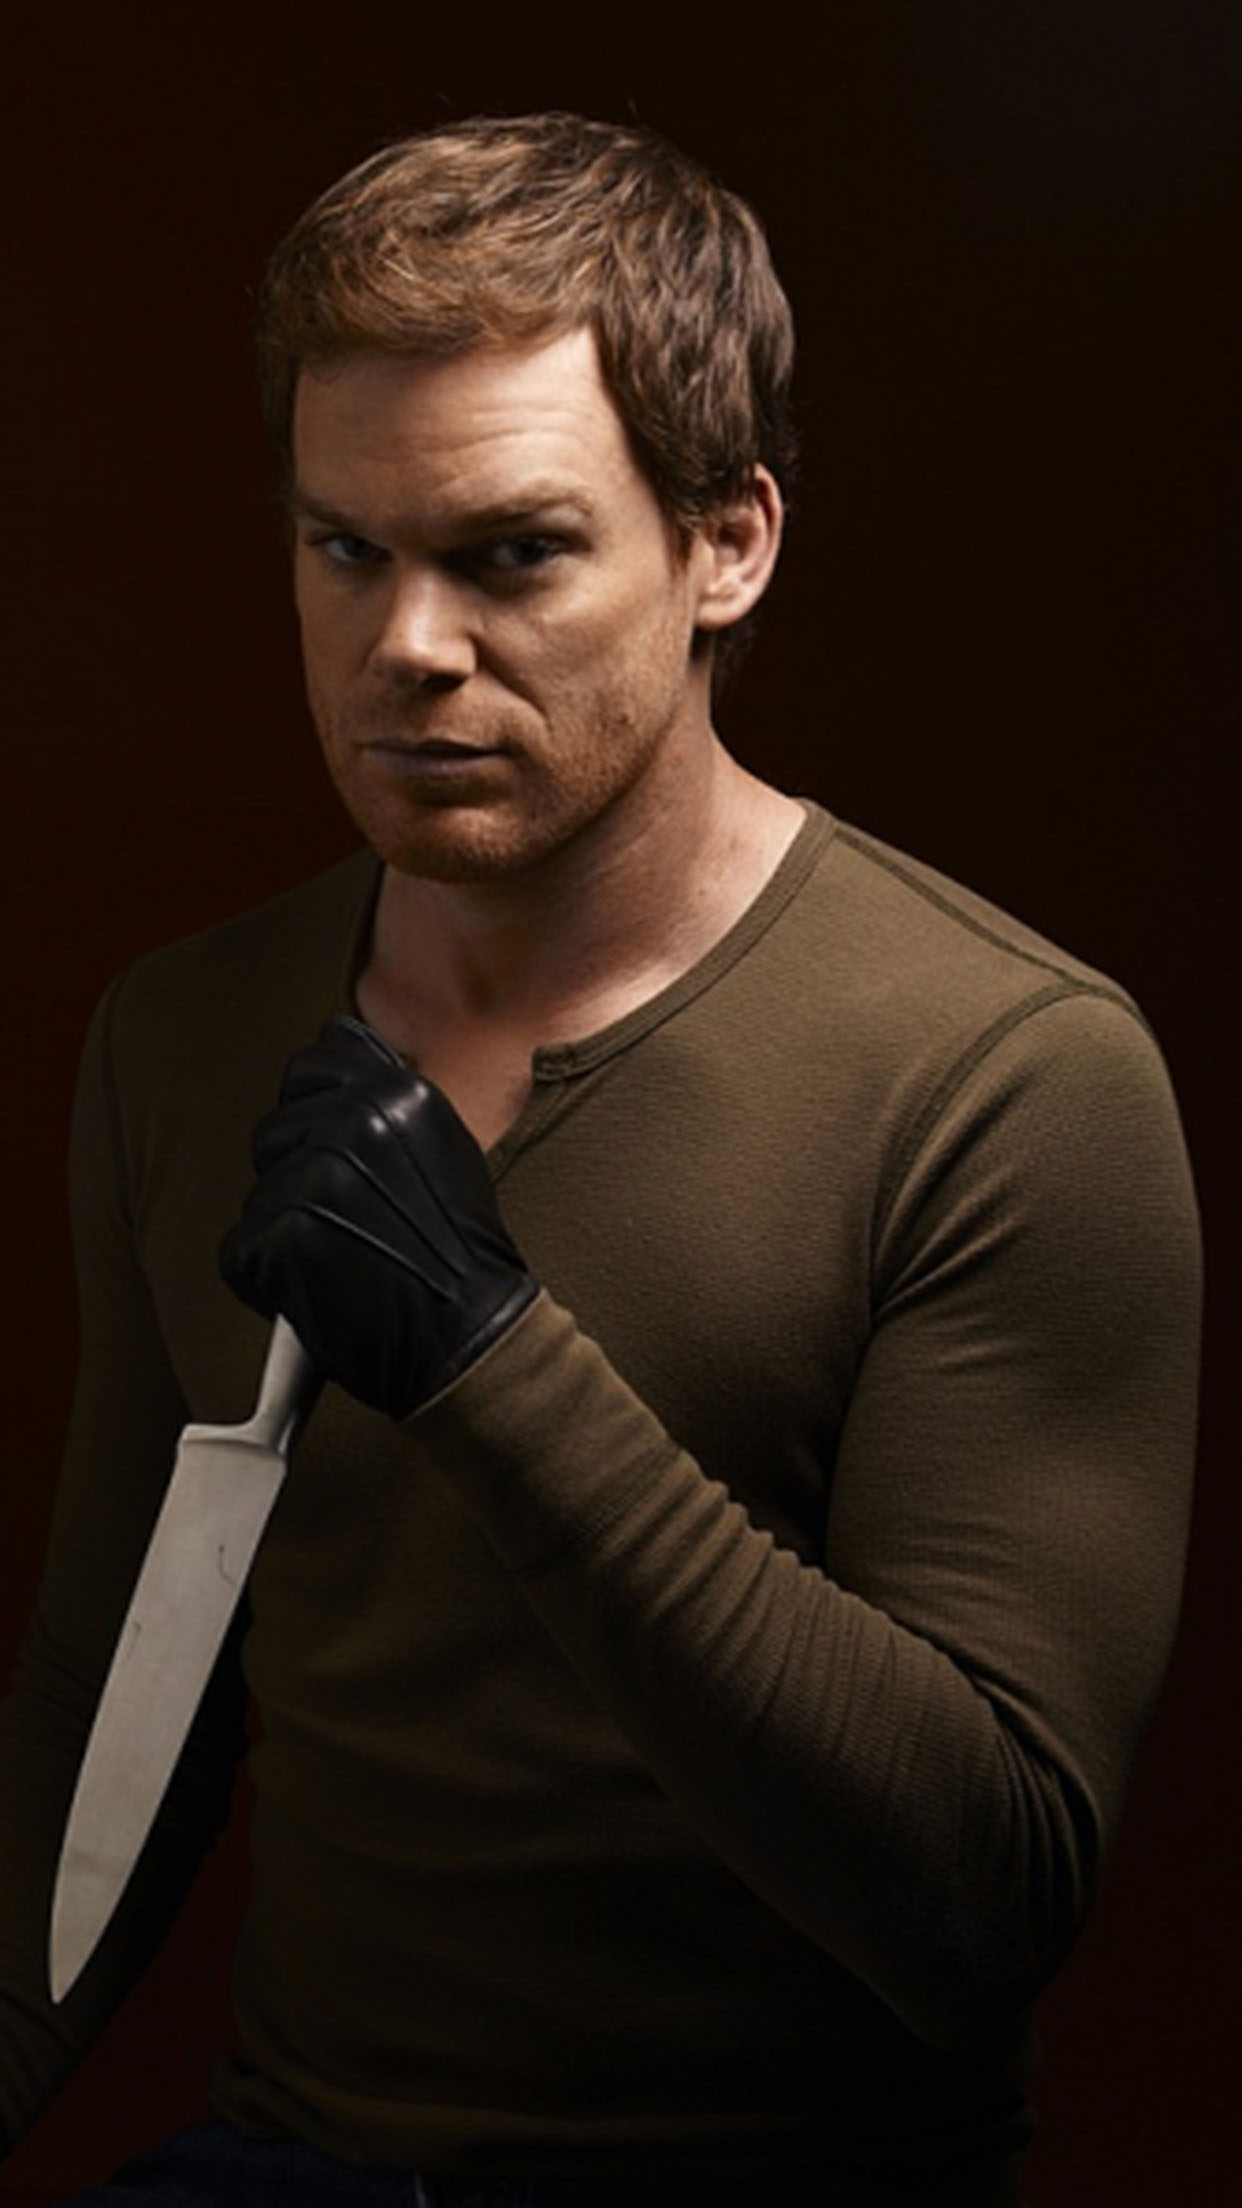 dexter wallpaper iphone 4